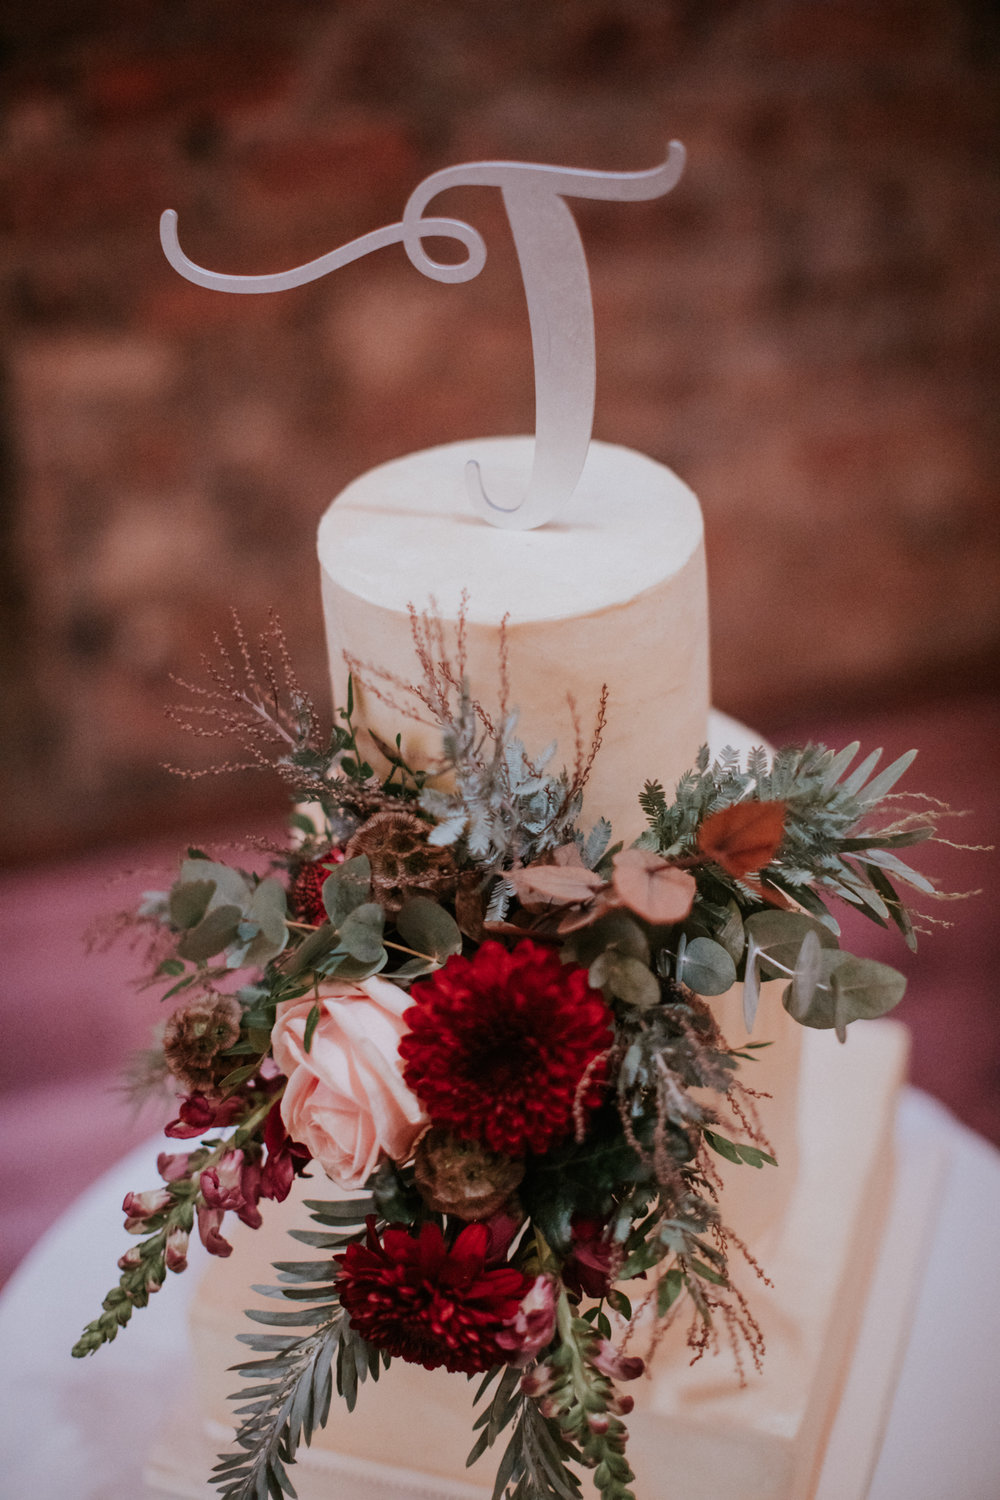 The naked wedding cake with the stunning flower decor from Floral Menagerie